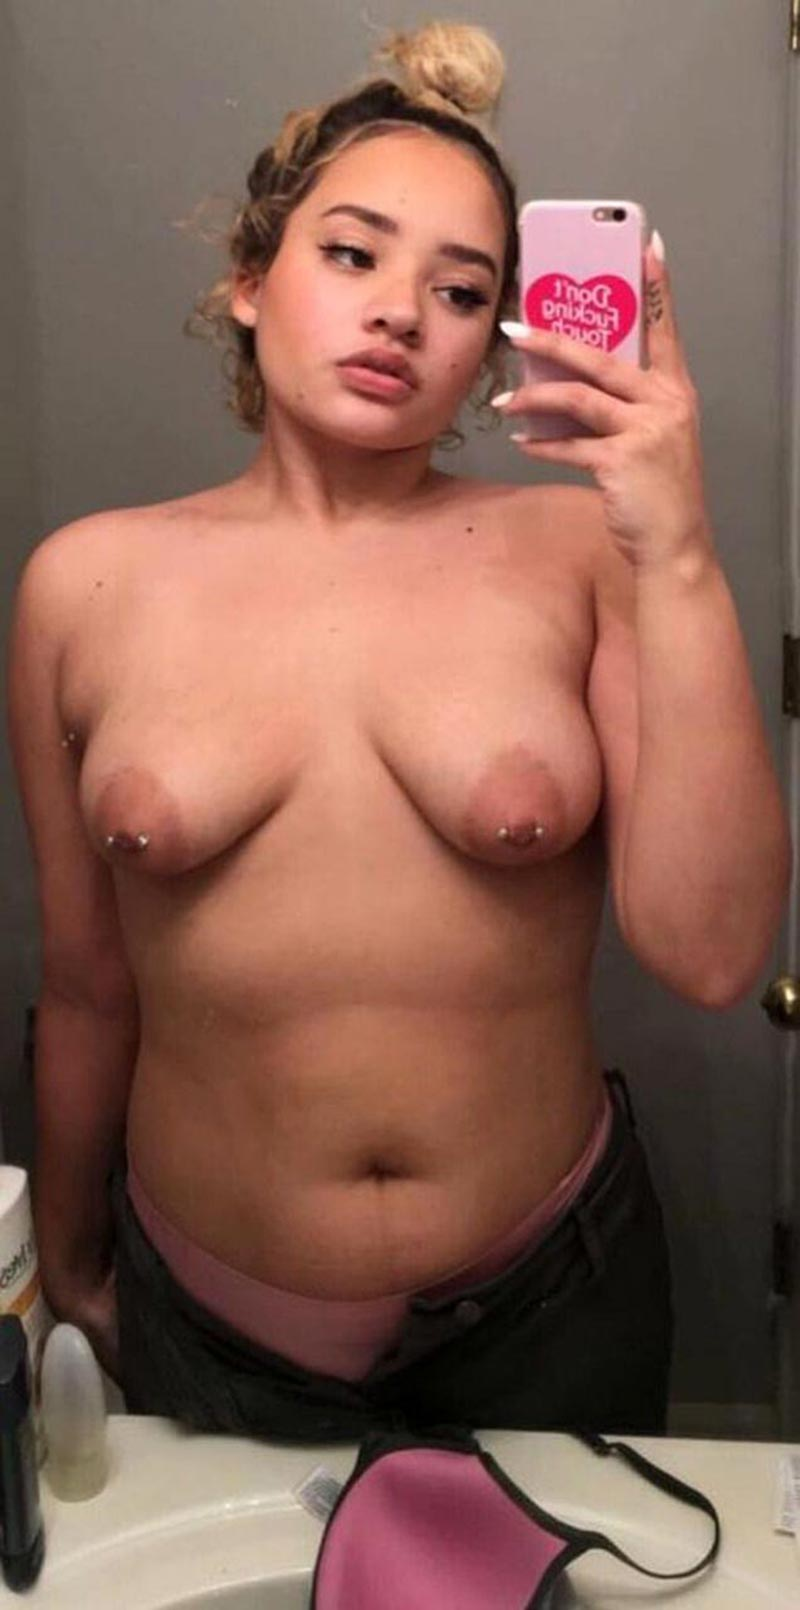 kim johansson showed fat body ugly tits on private pics